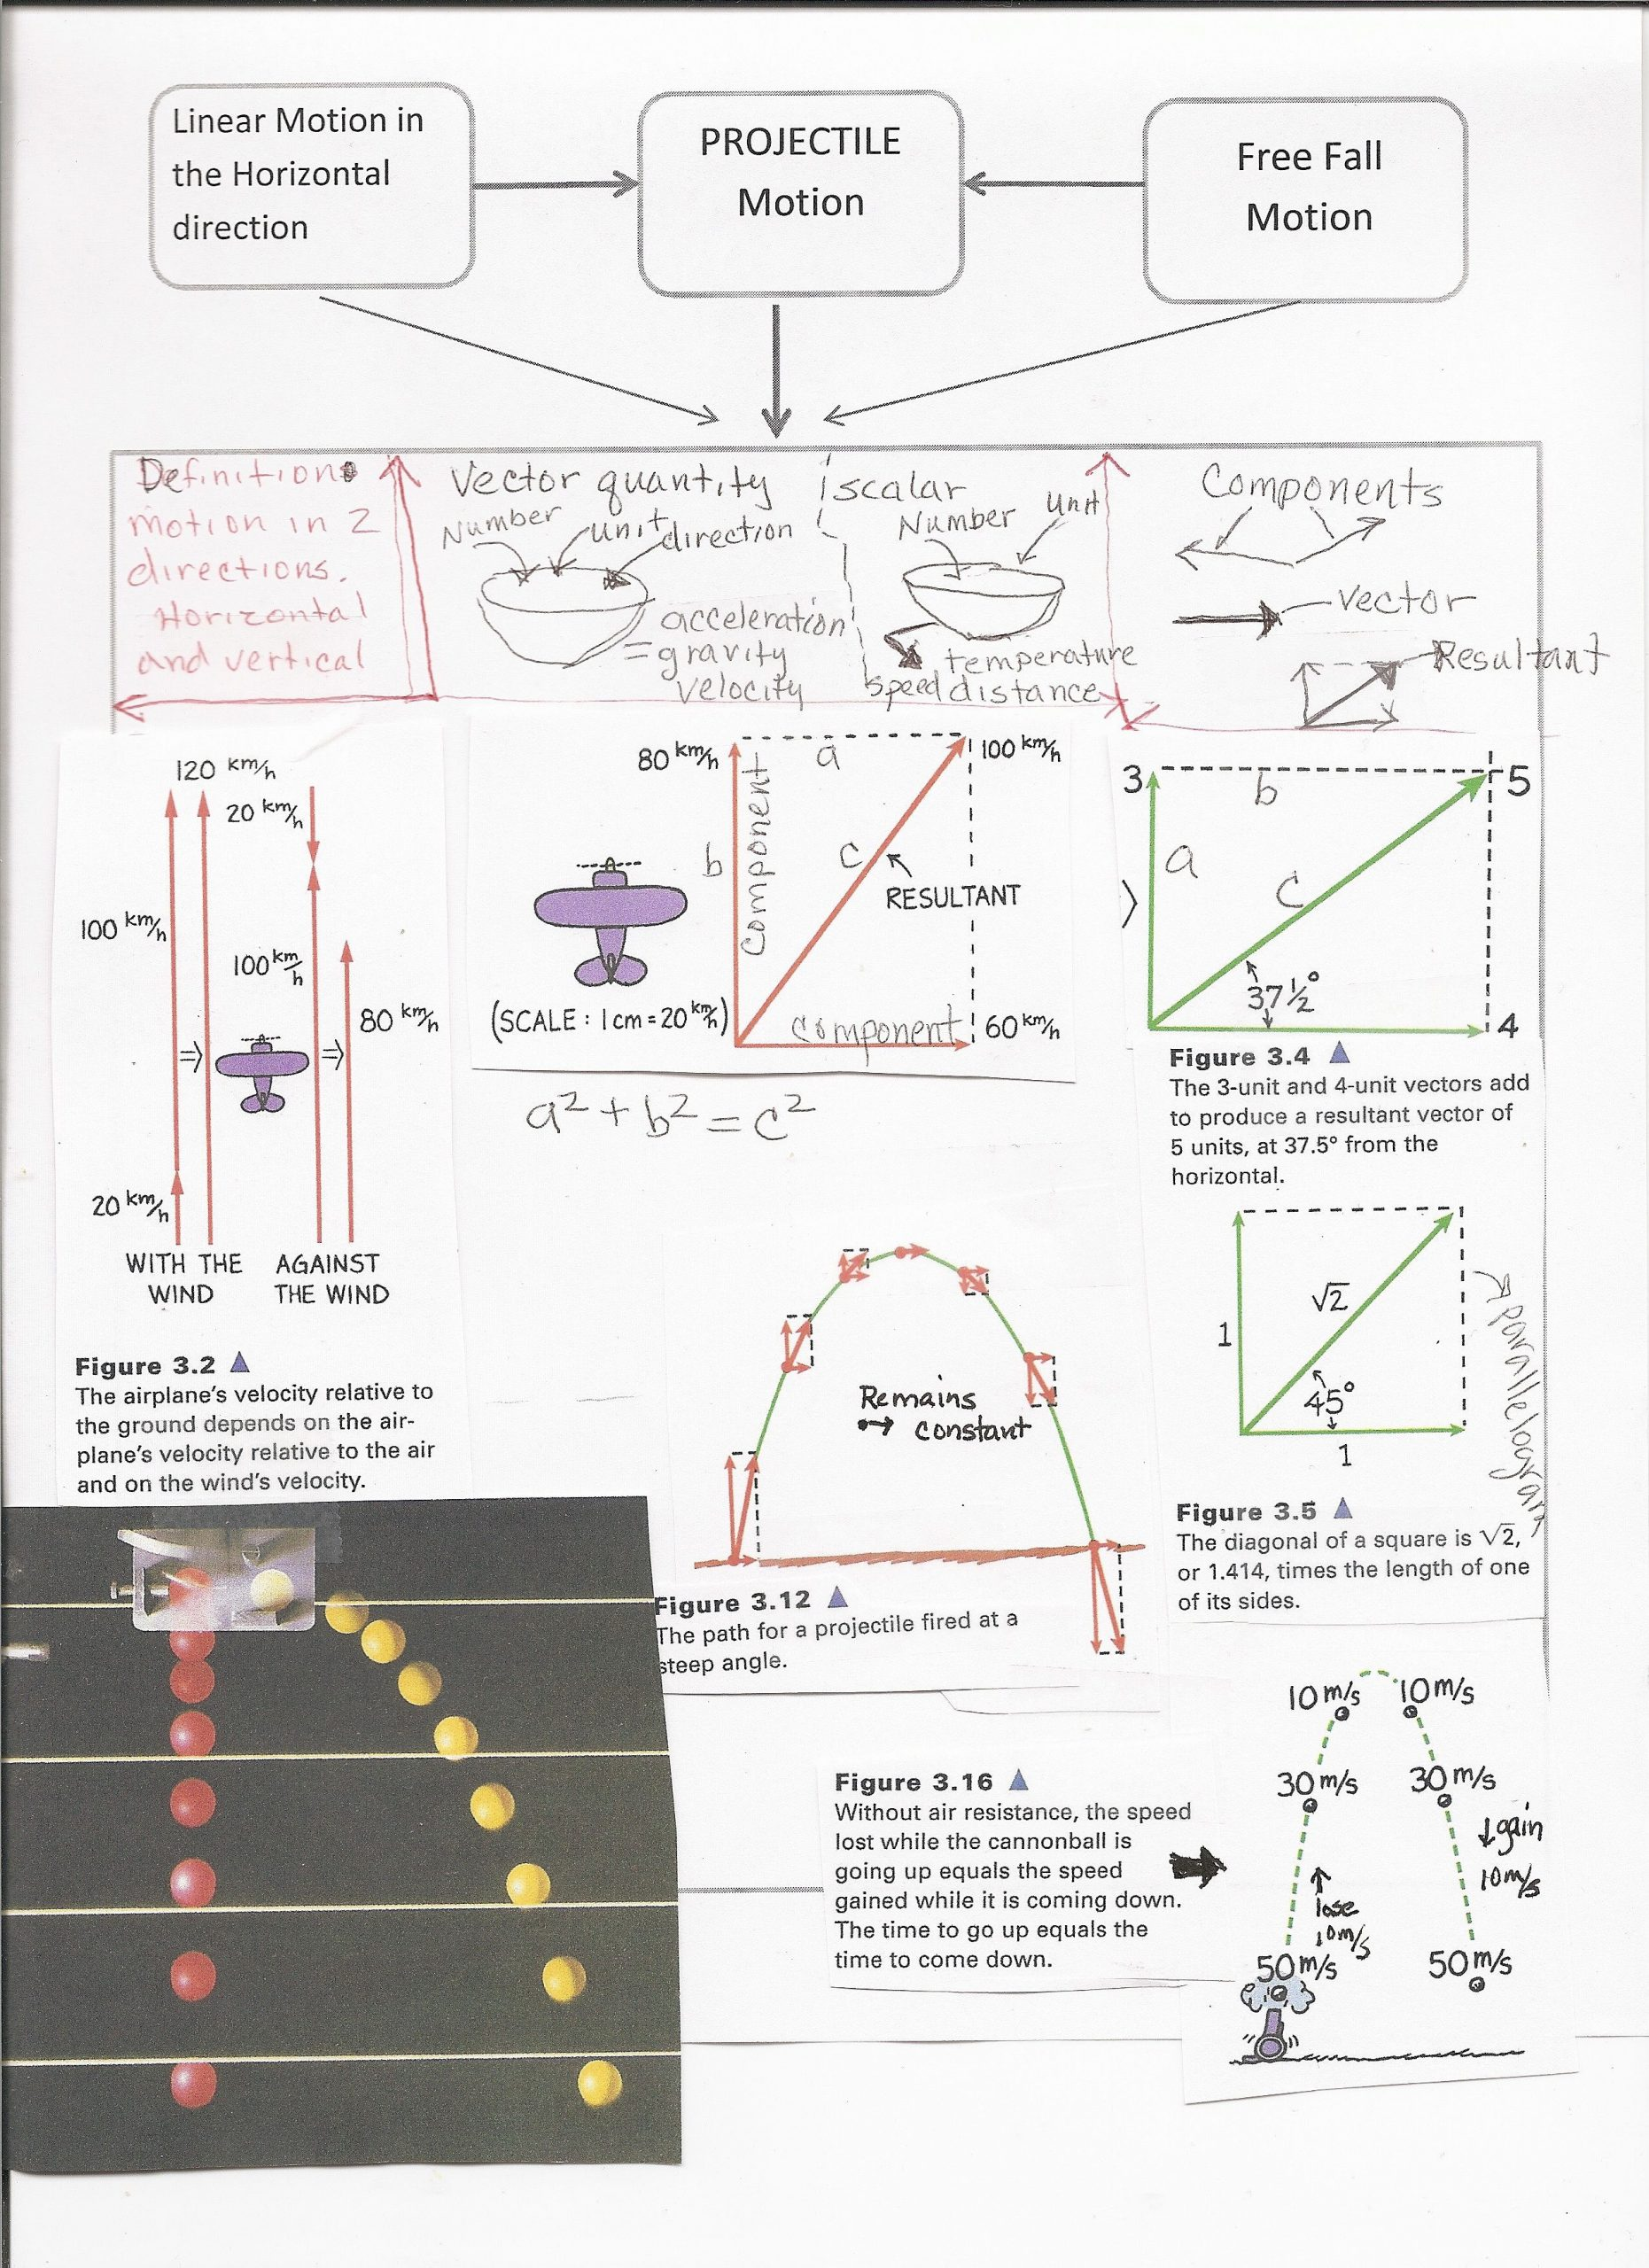 Projectile Motion Worksheet Answers Image Result for Conceptual Physics Projectile Motion Test A